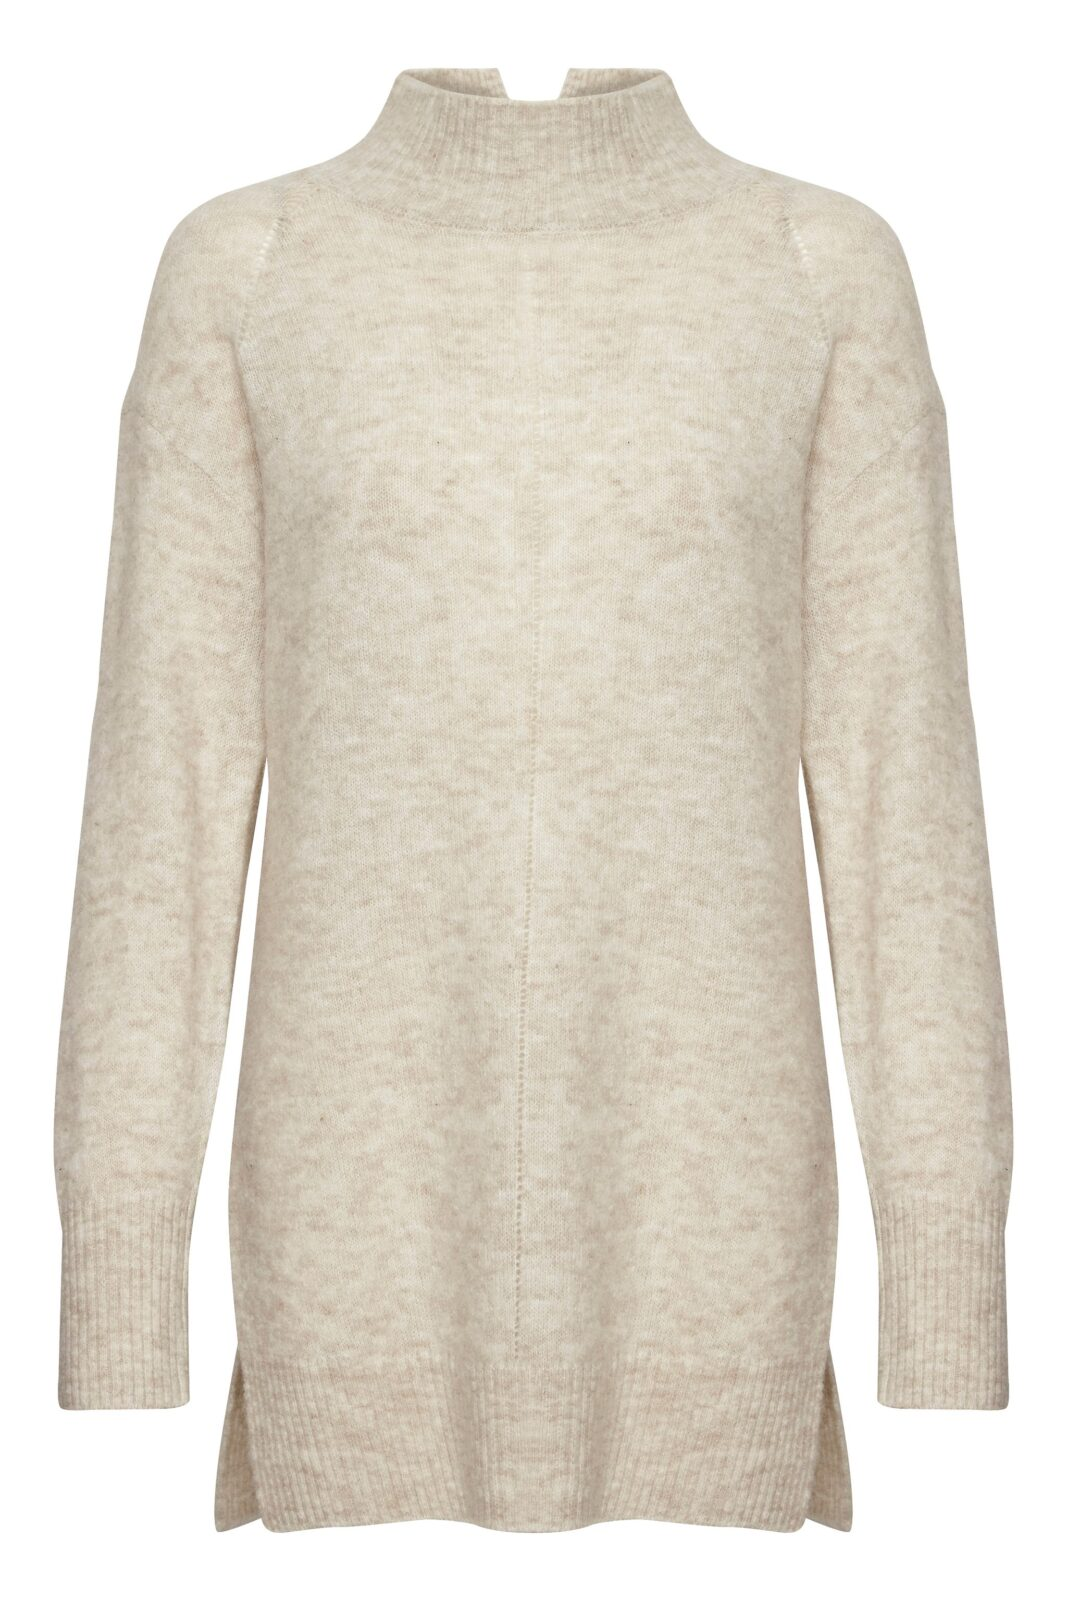 Soaked in Luxury Angel Rollneck Pullover in Whisper White is an alpaca long jumper available on colmershill.com